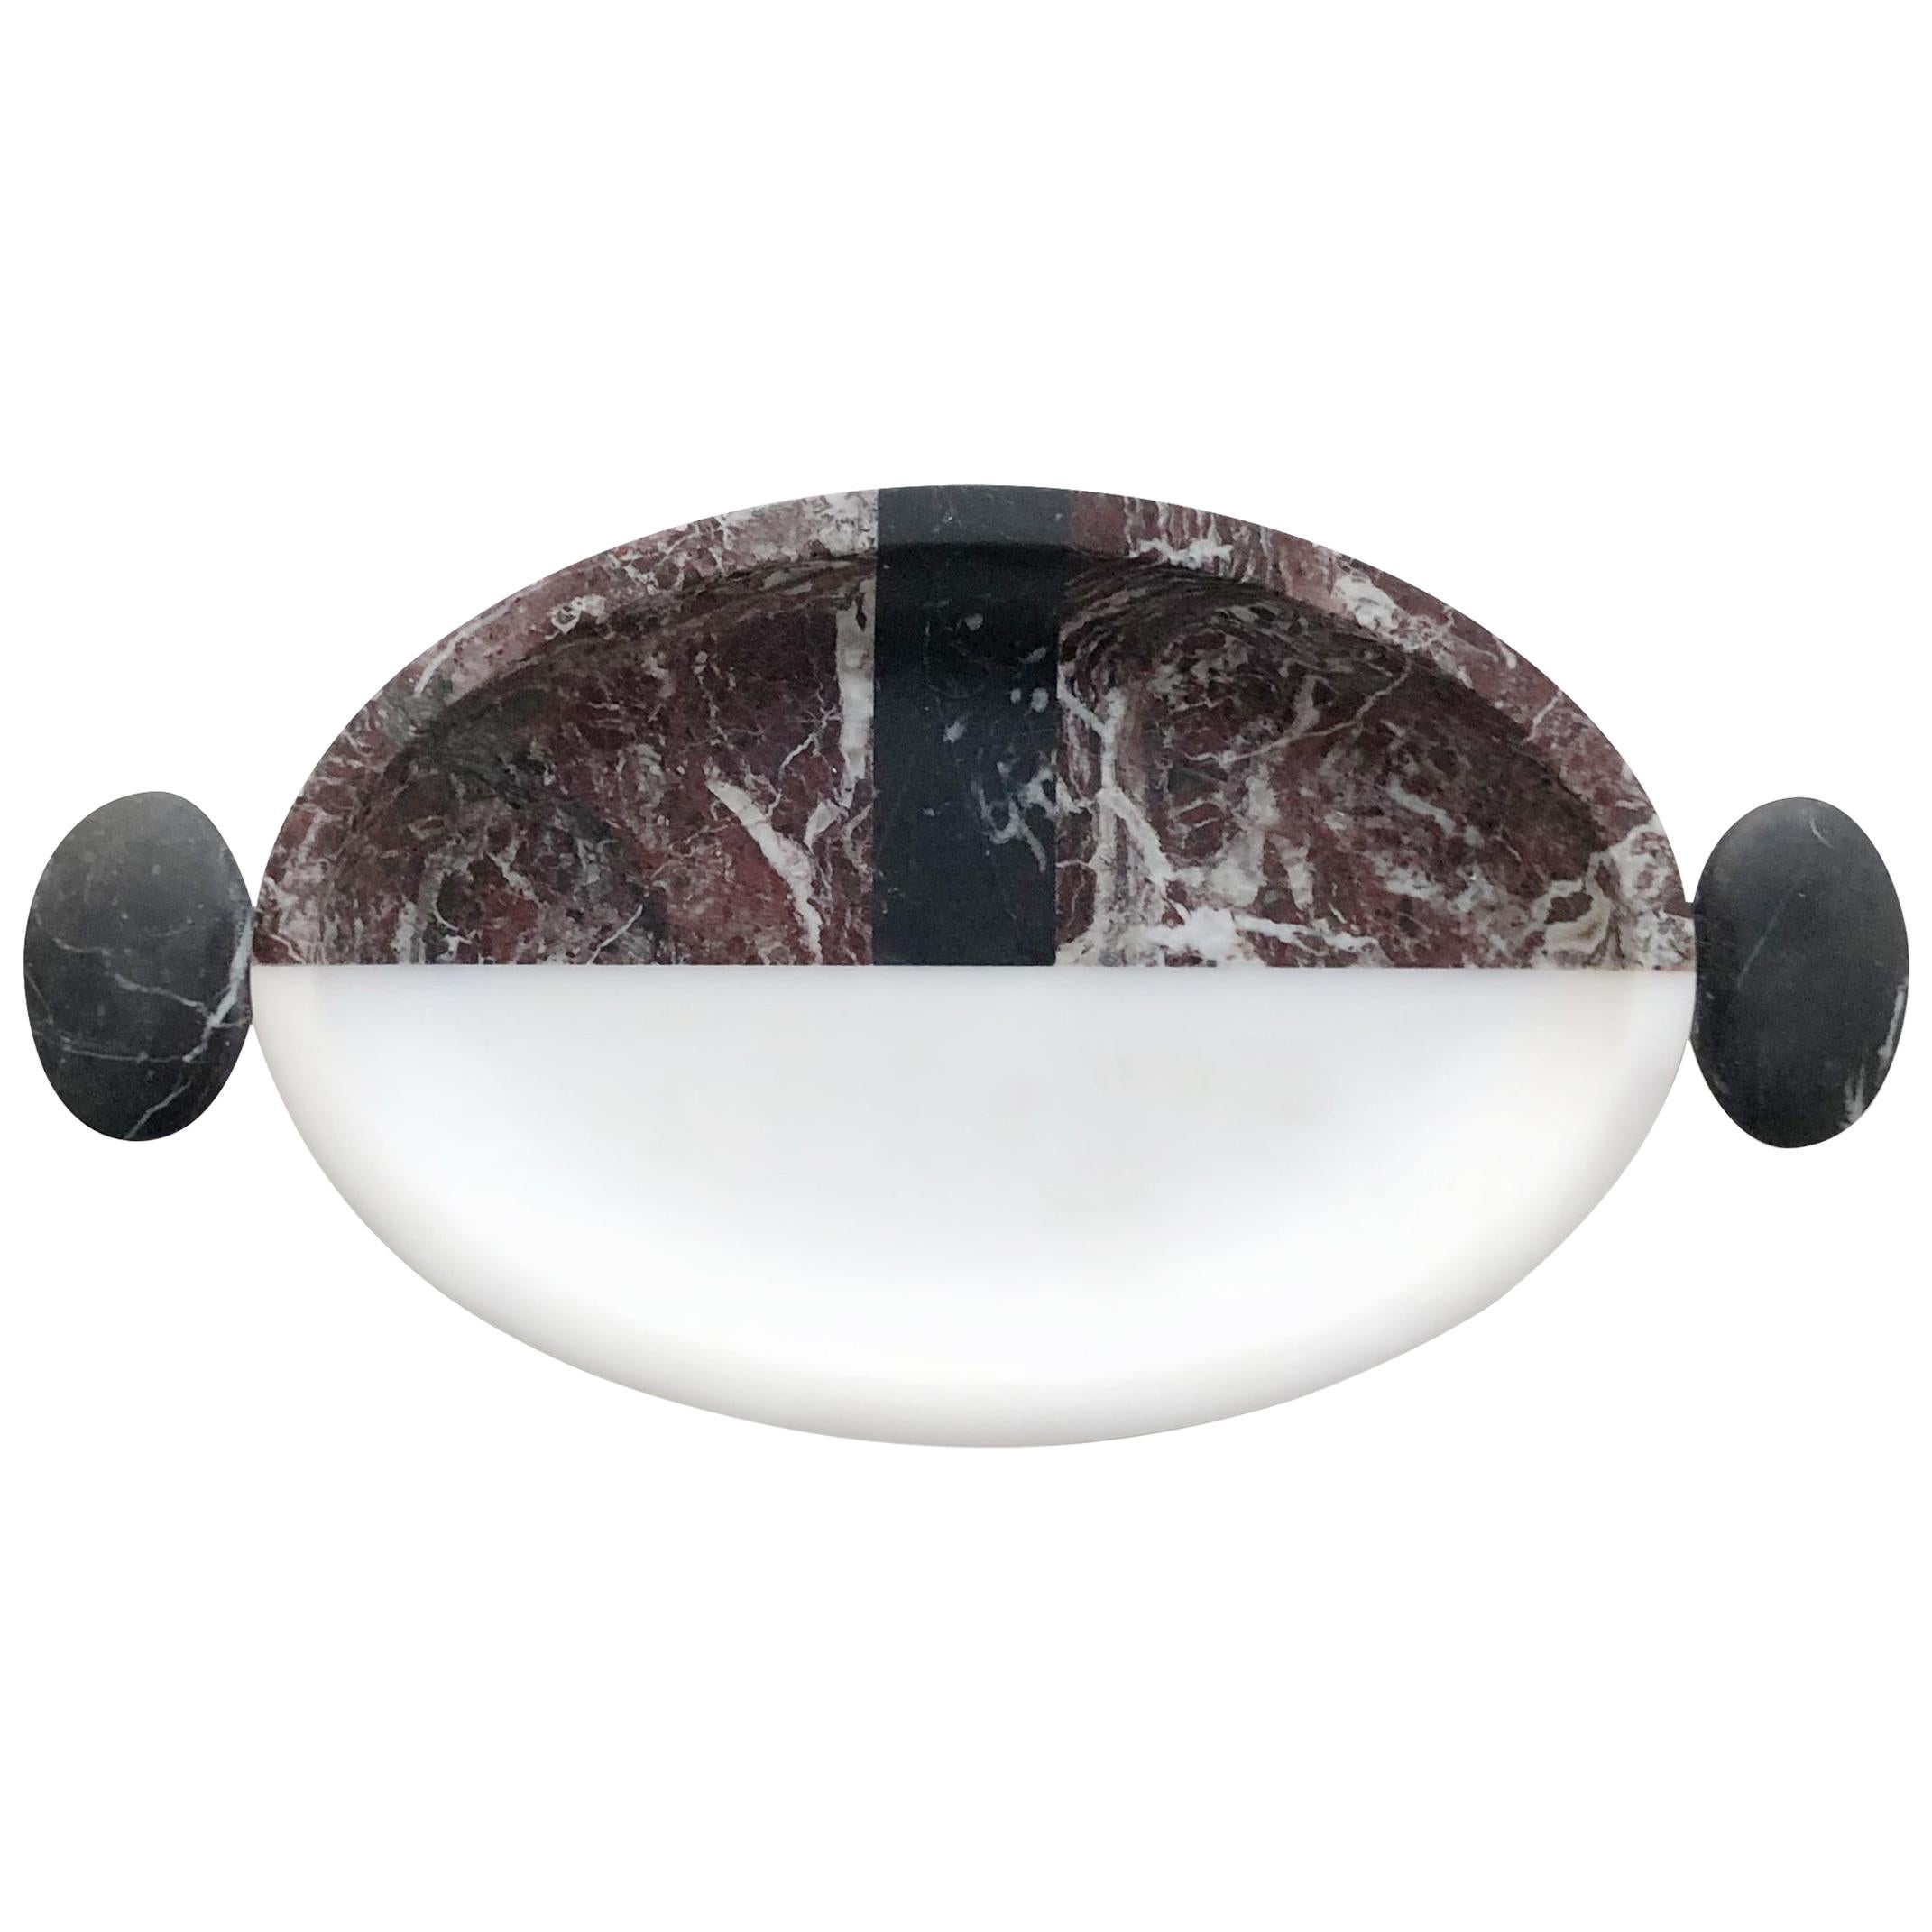 Serving Tray in Marble by Matteo Cibic, Made in Italy